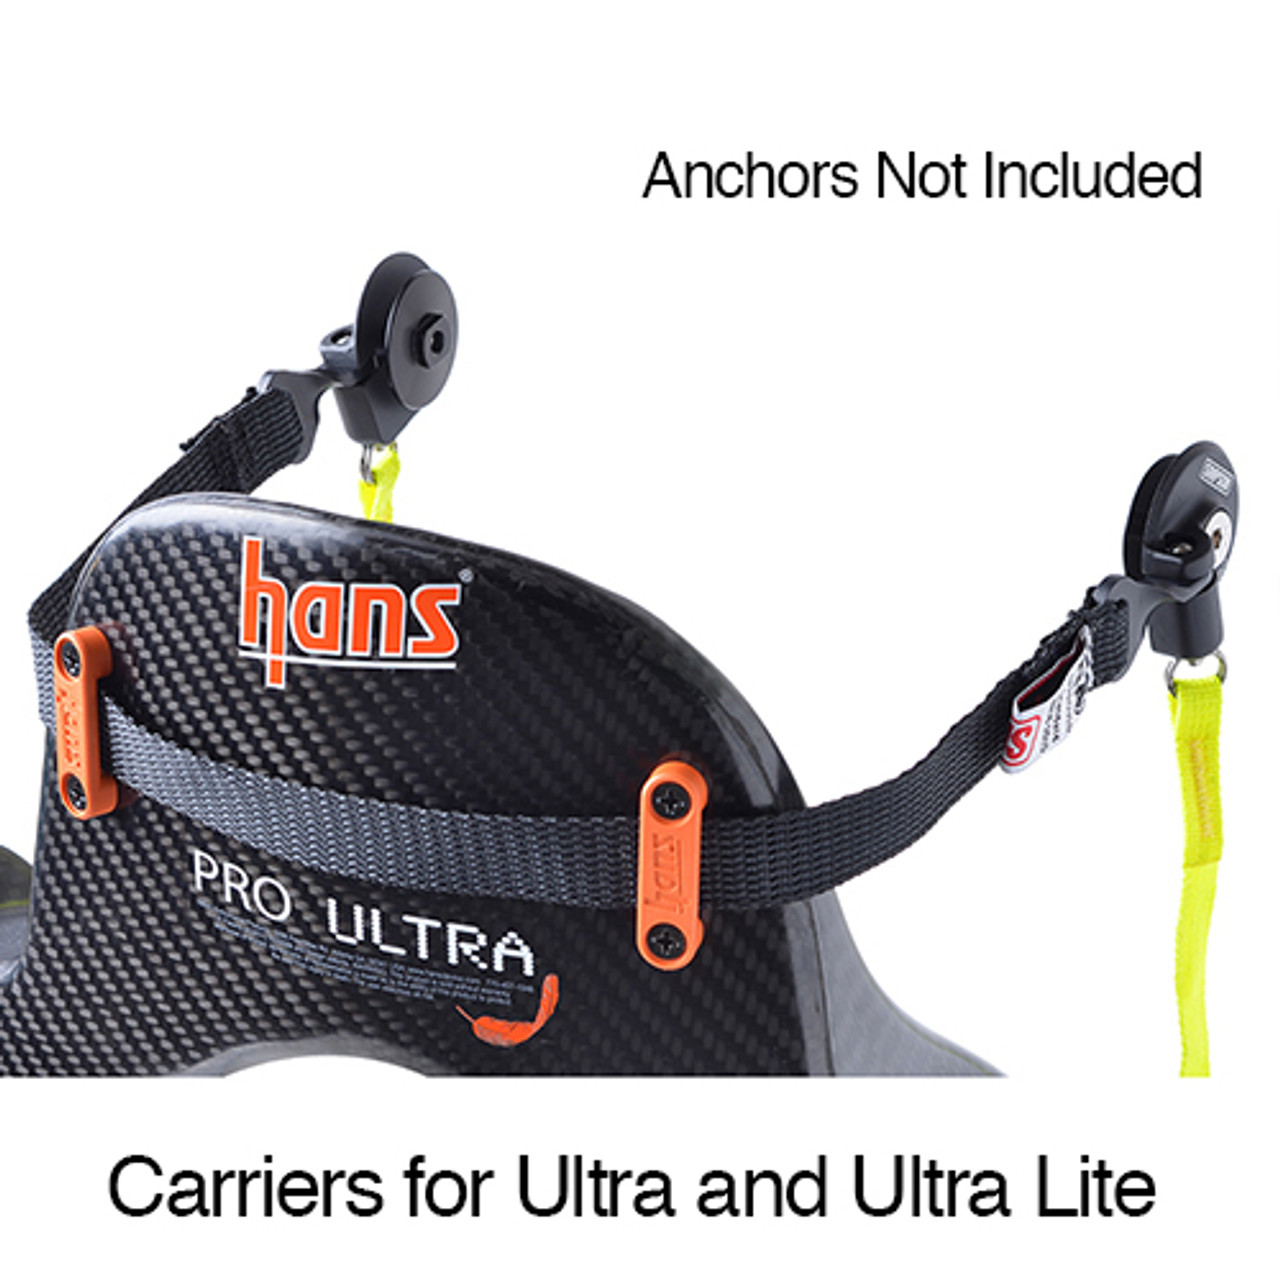 Carriers for Ulta and Ultra Lite